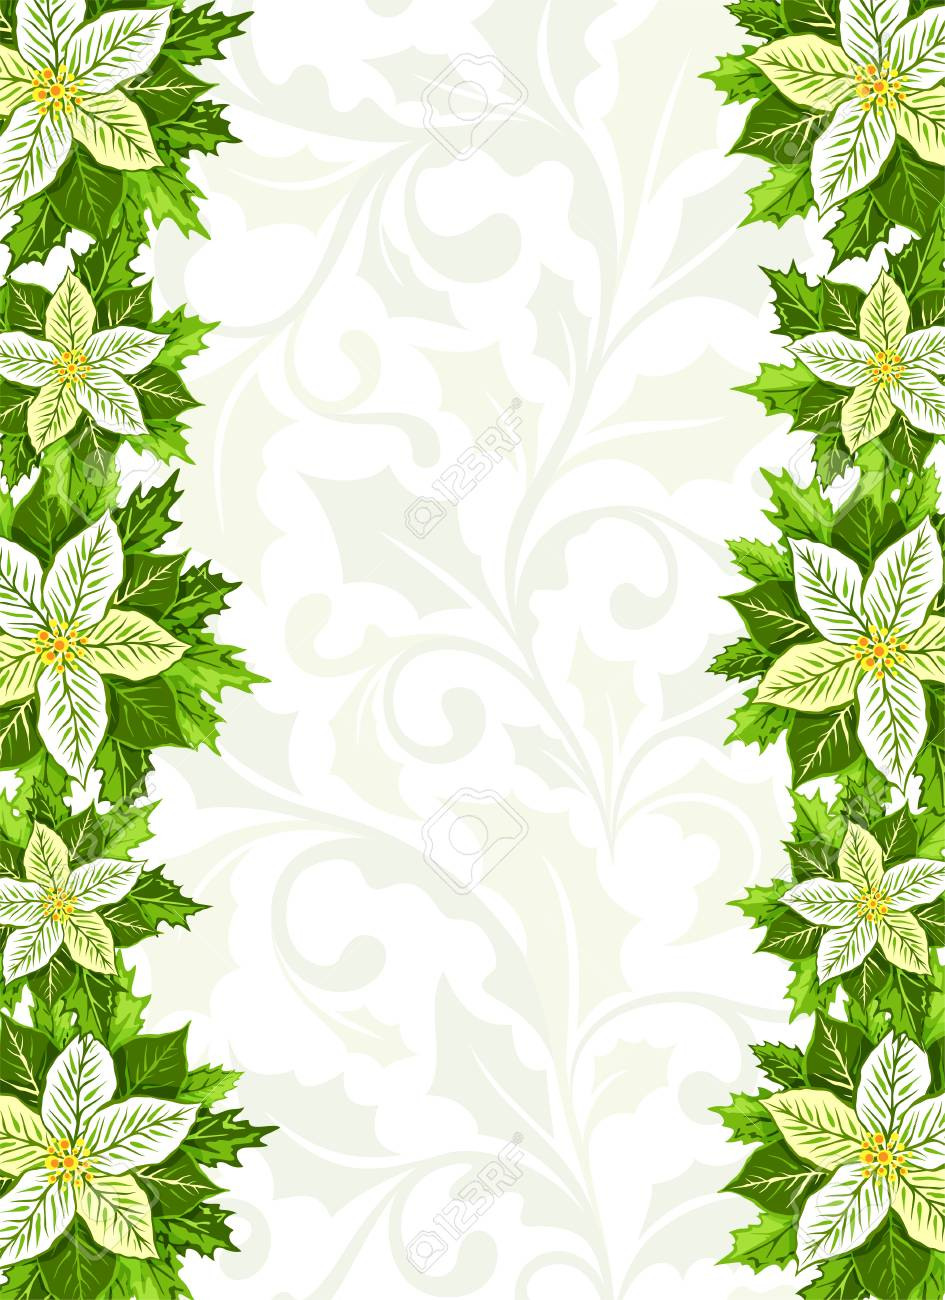 Christmas Background With White Poinsettia And Holly Leaves Decoration Elements Vertical Banner Border